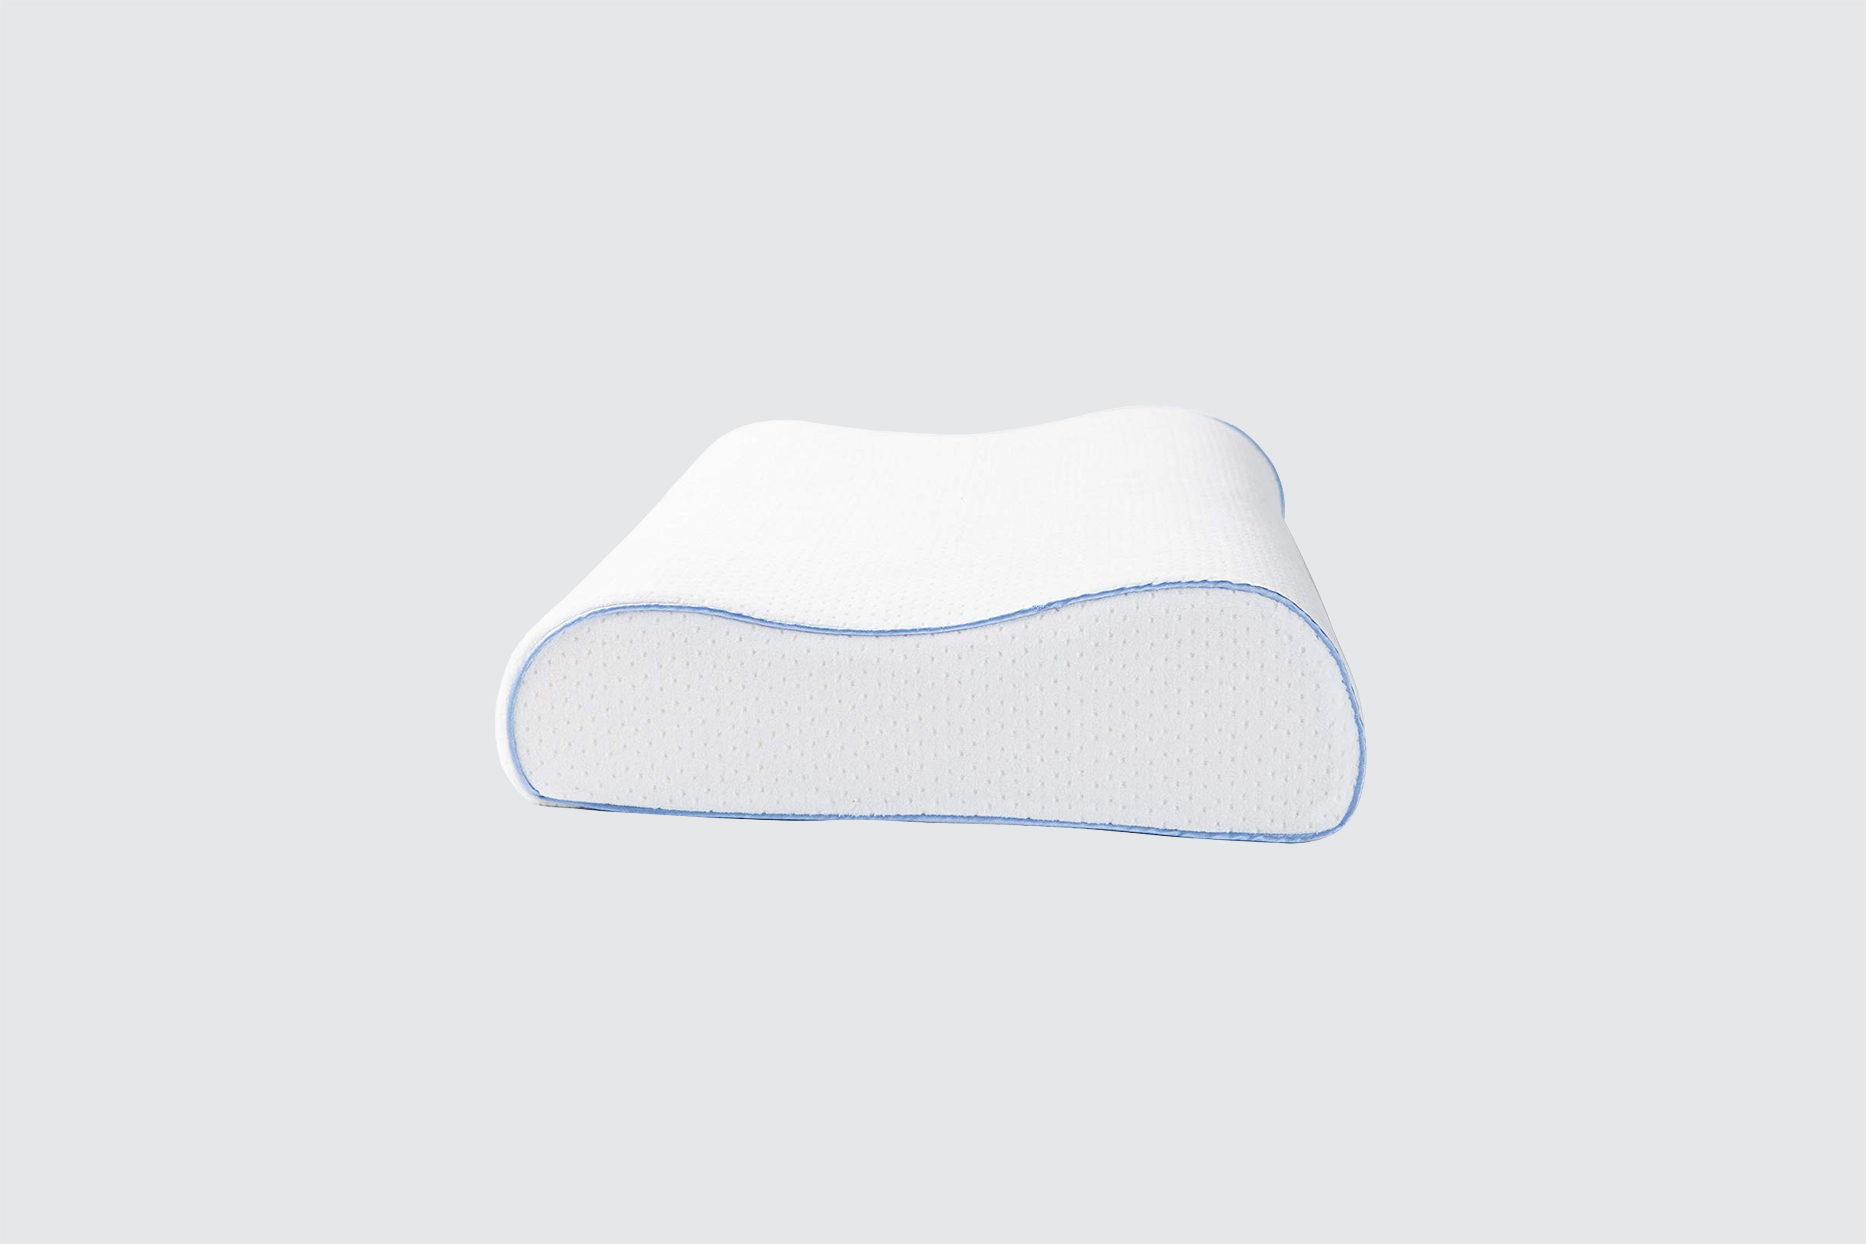 AERIS Contour Pillow